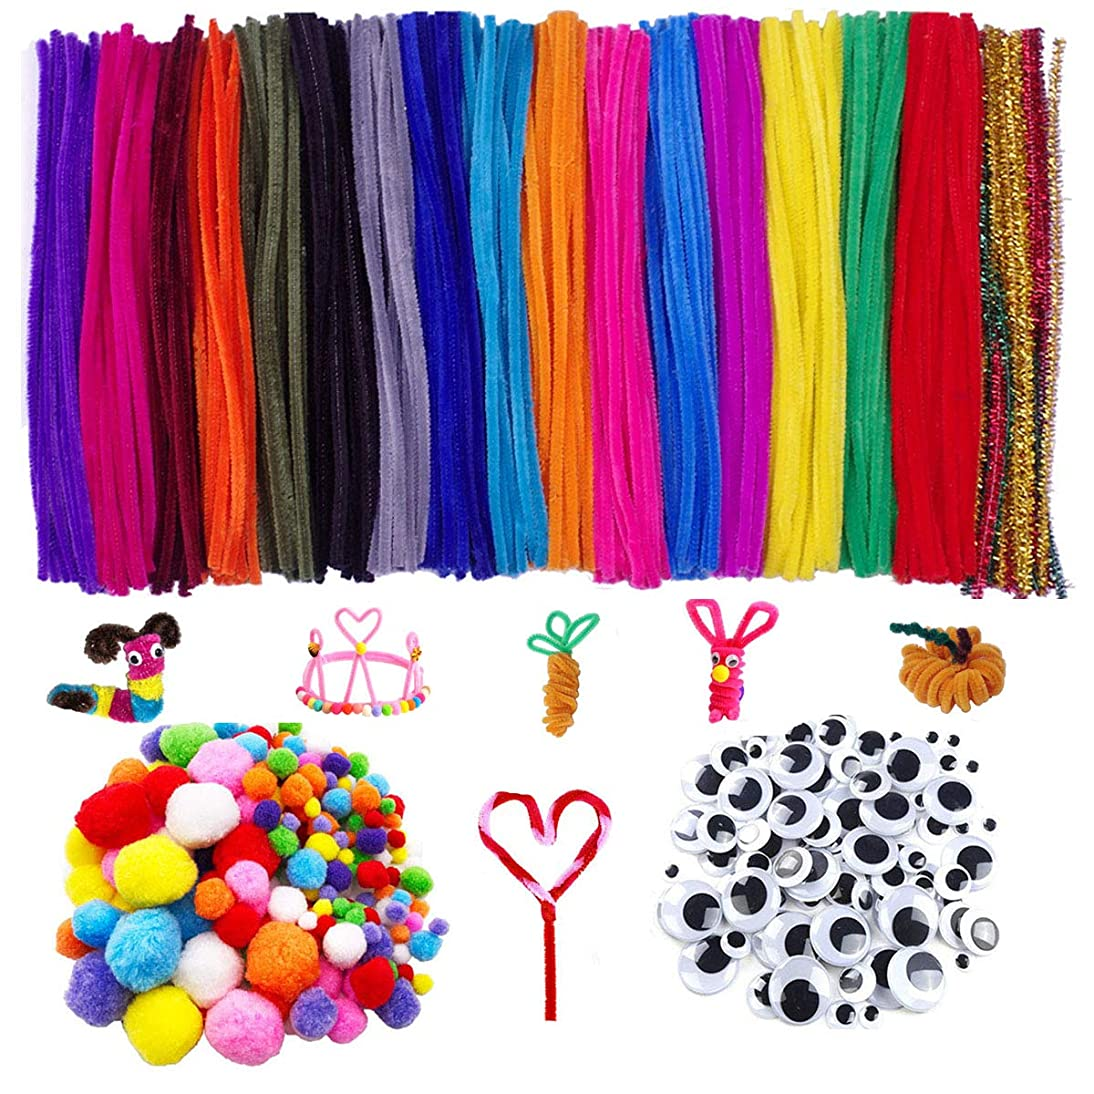 Bright Silver Pipe Cleaners, 700 Pcs Craft Supplies Set-200 Pcs Chenille Stems Set 200 Pcs Pom Poms Craft, 300 Pcs Wiggle Googly Eyes Self Adhesive Assorted Sizes for DIY Art Craft